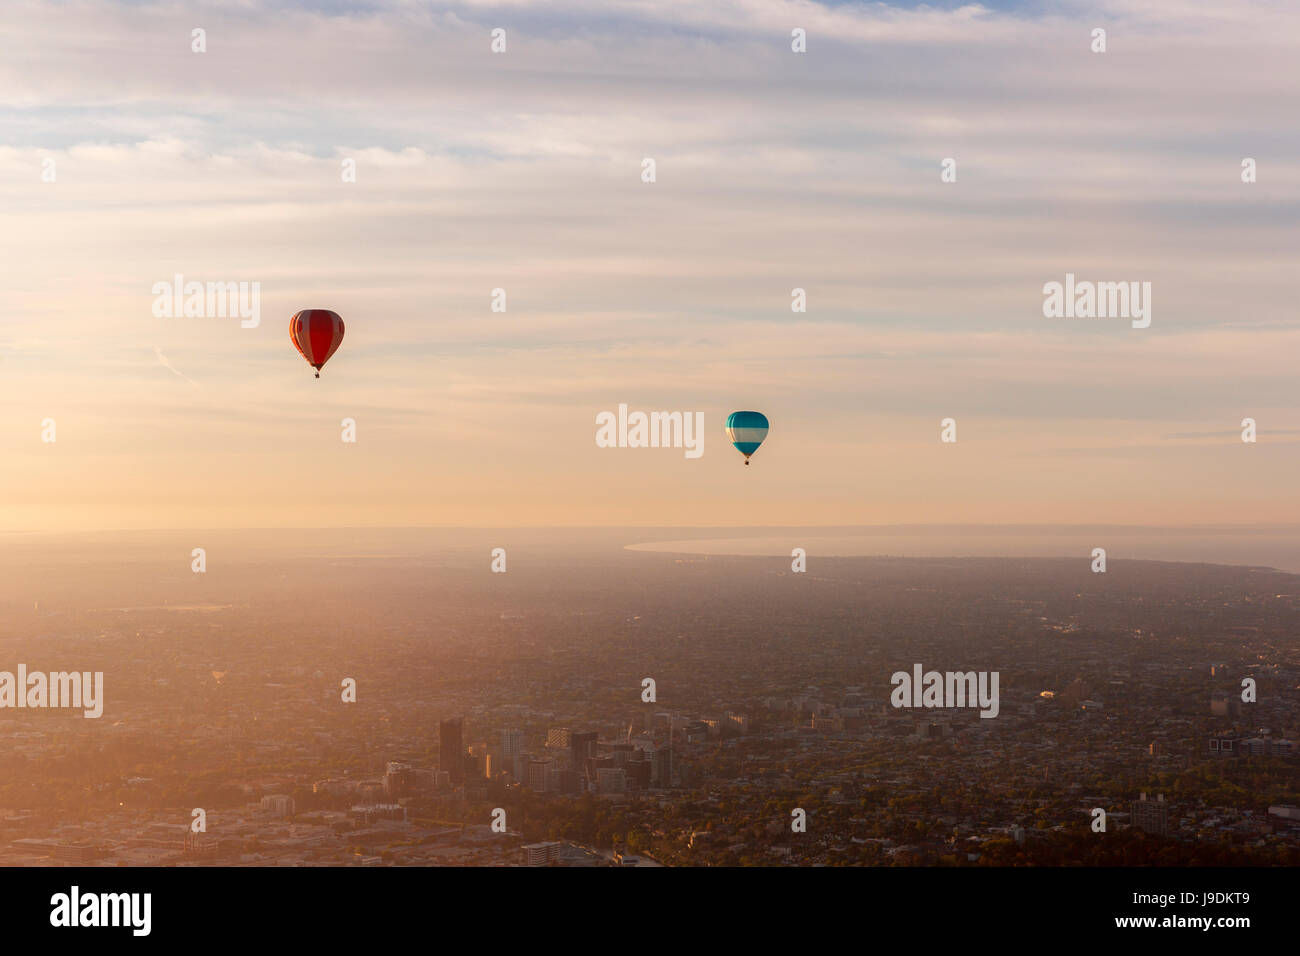 Hot air balloons in the sky. - Stock Image